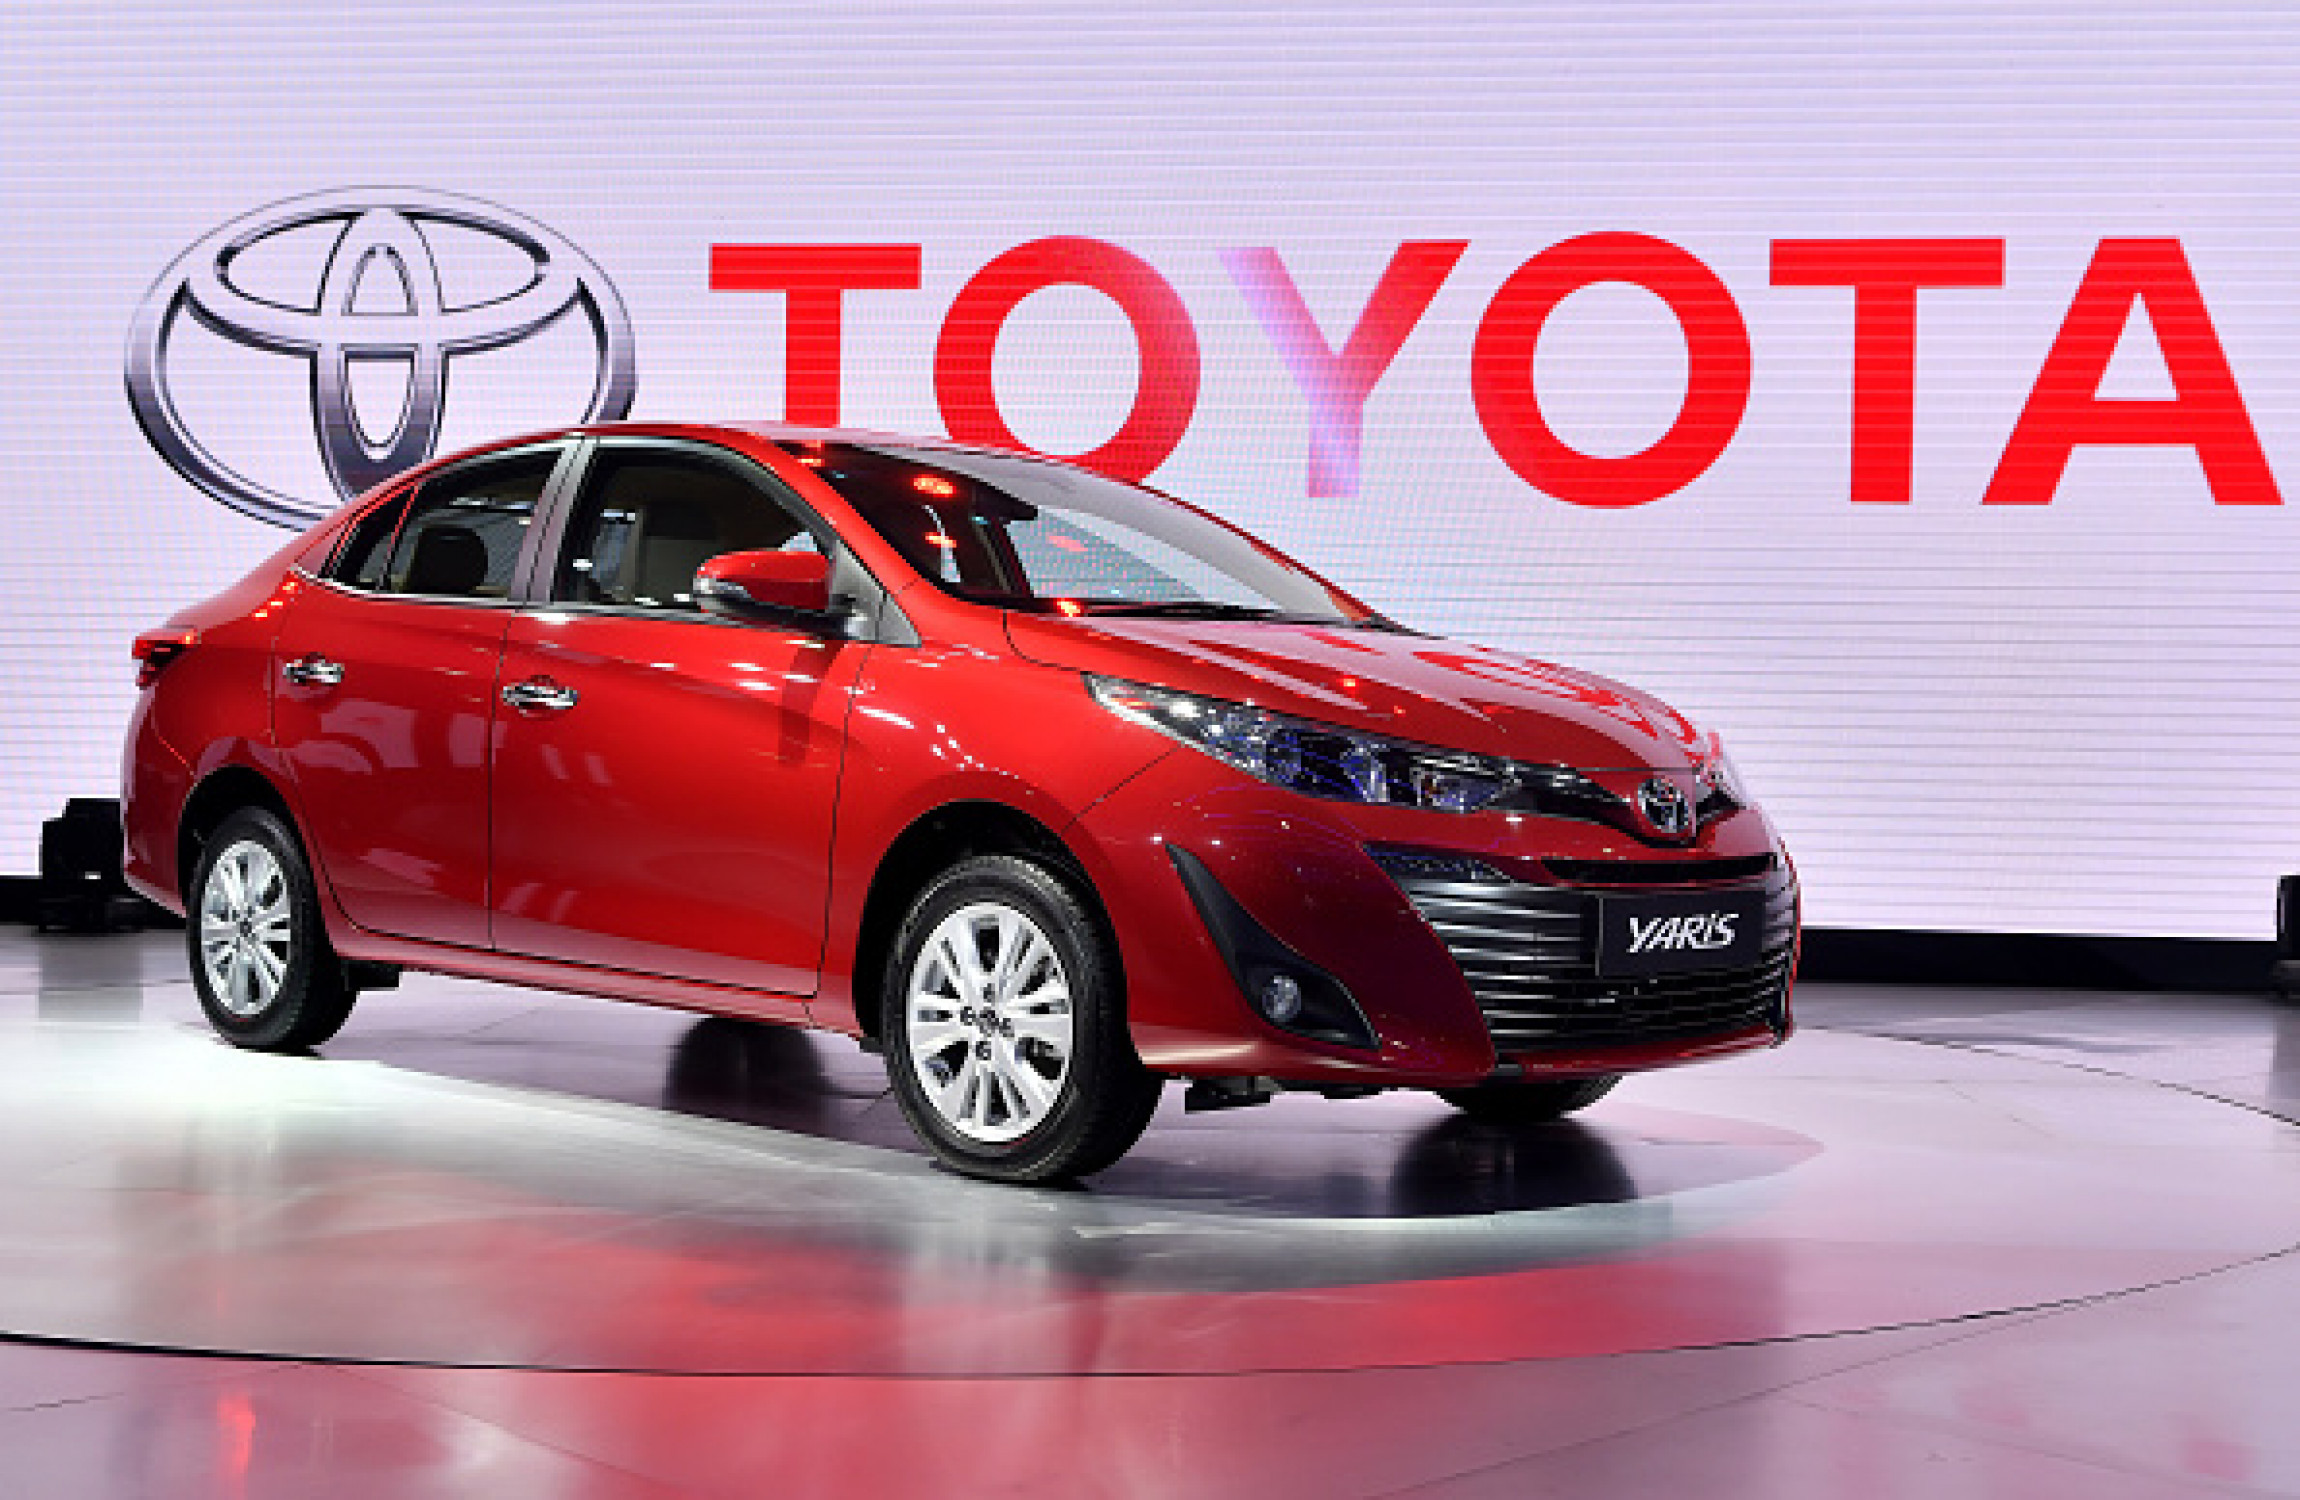 Diesel do nicely? Not in our cars, says Toyota